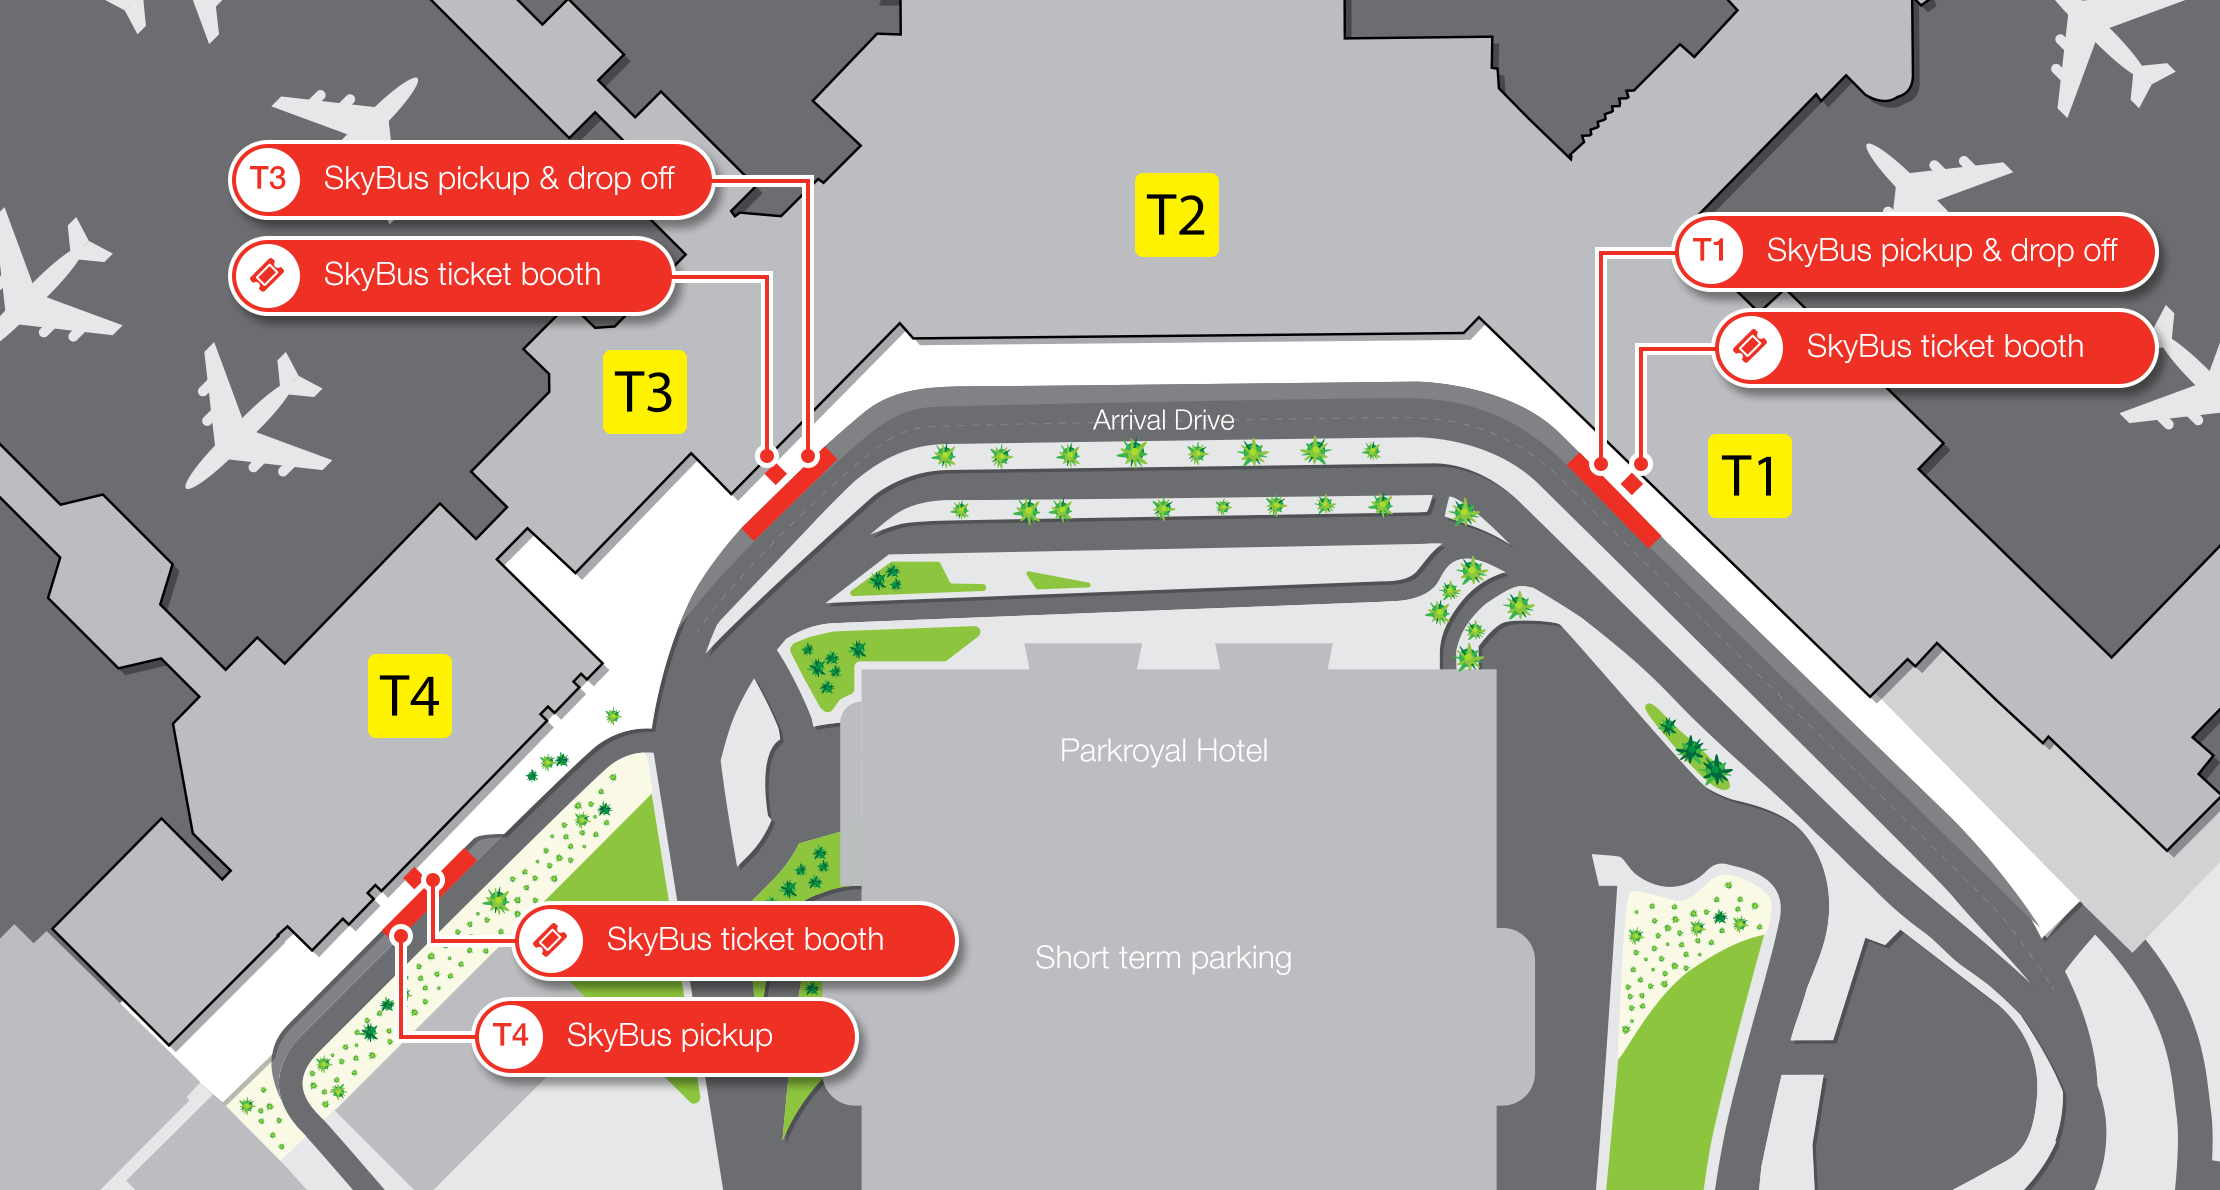 Skybus pickup locations